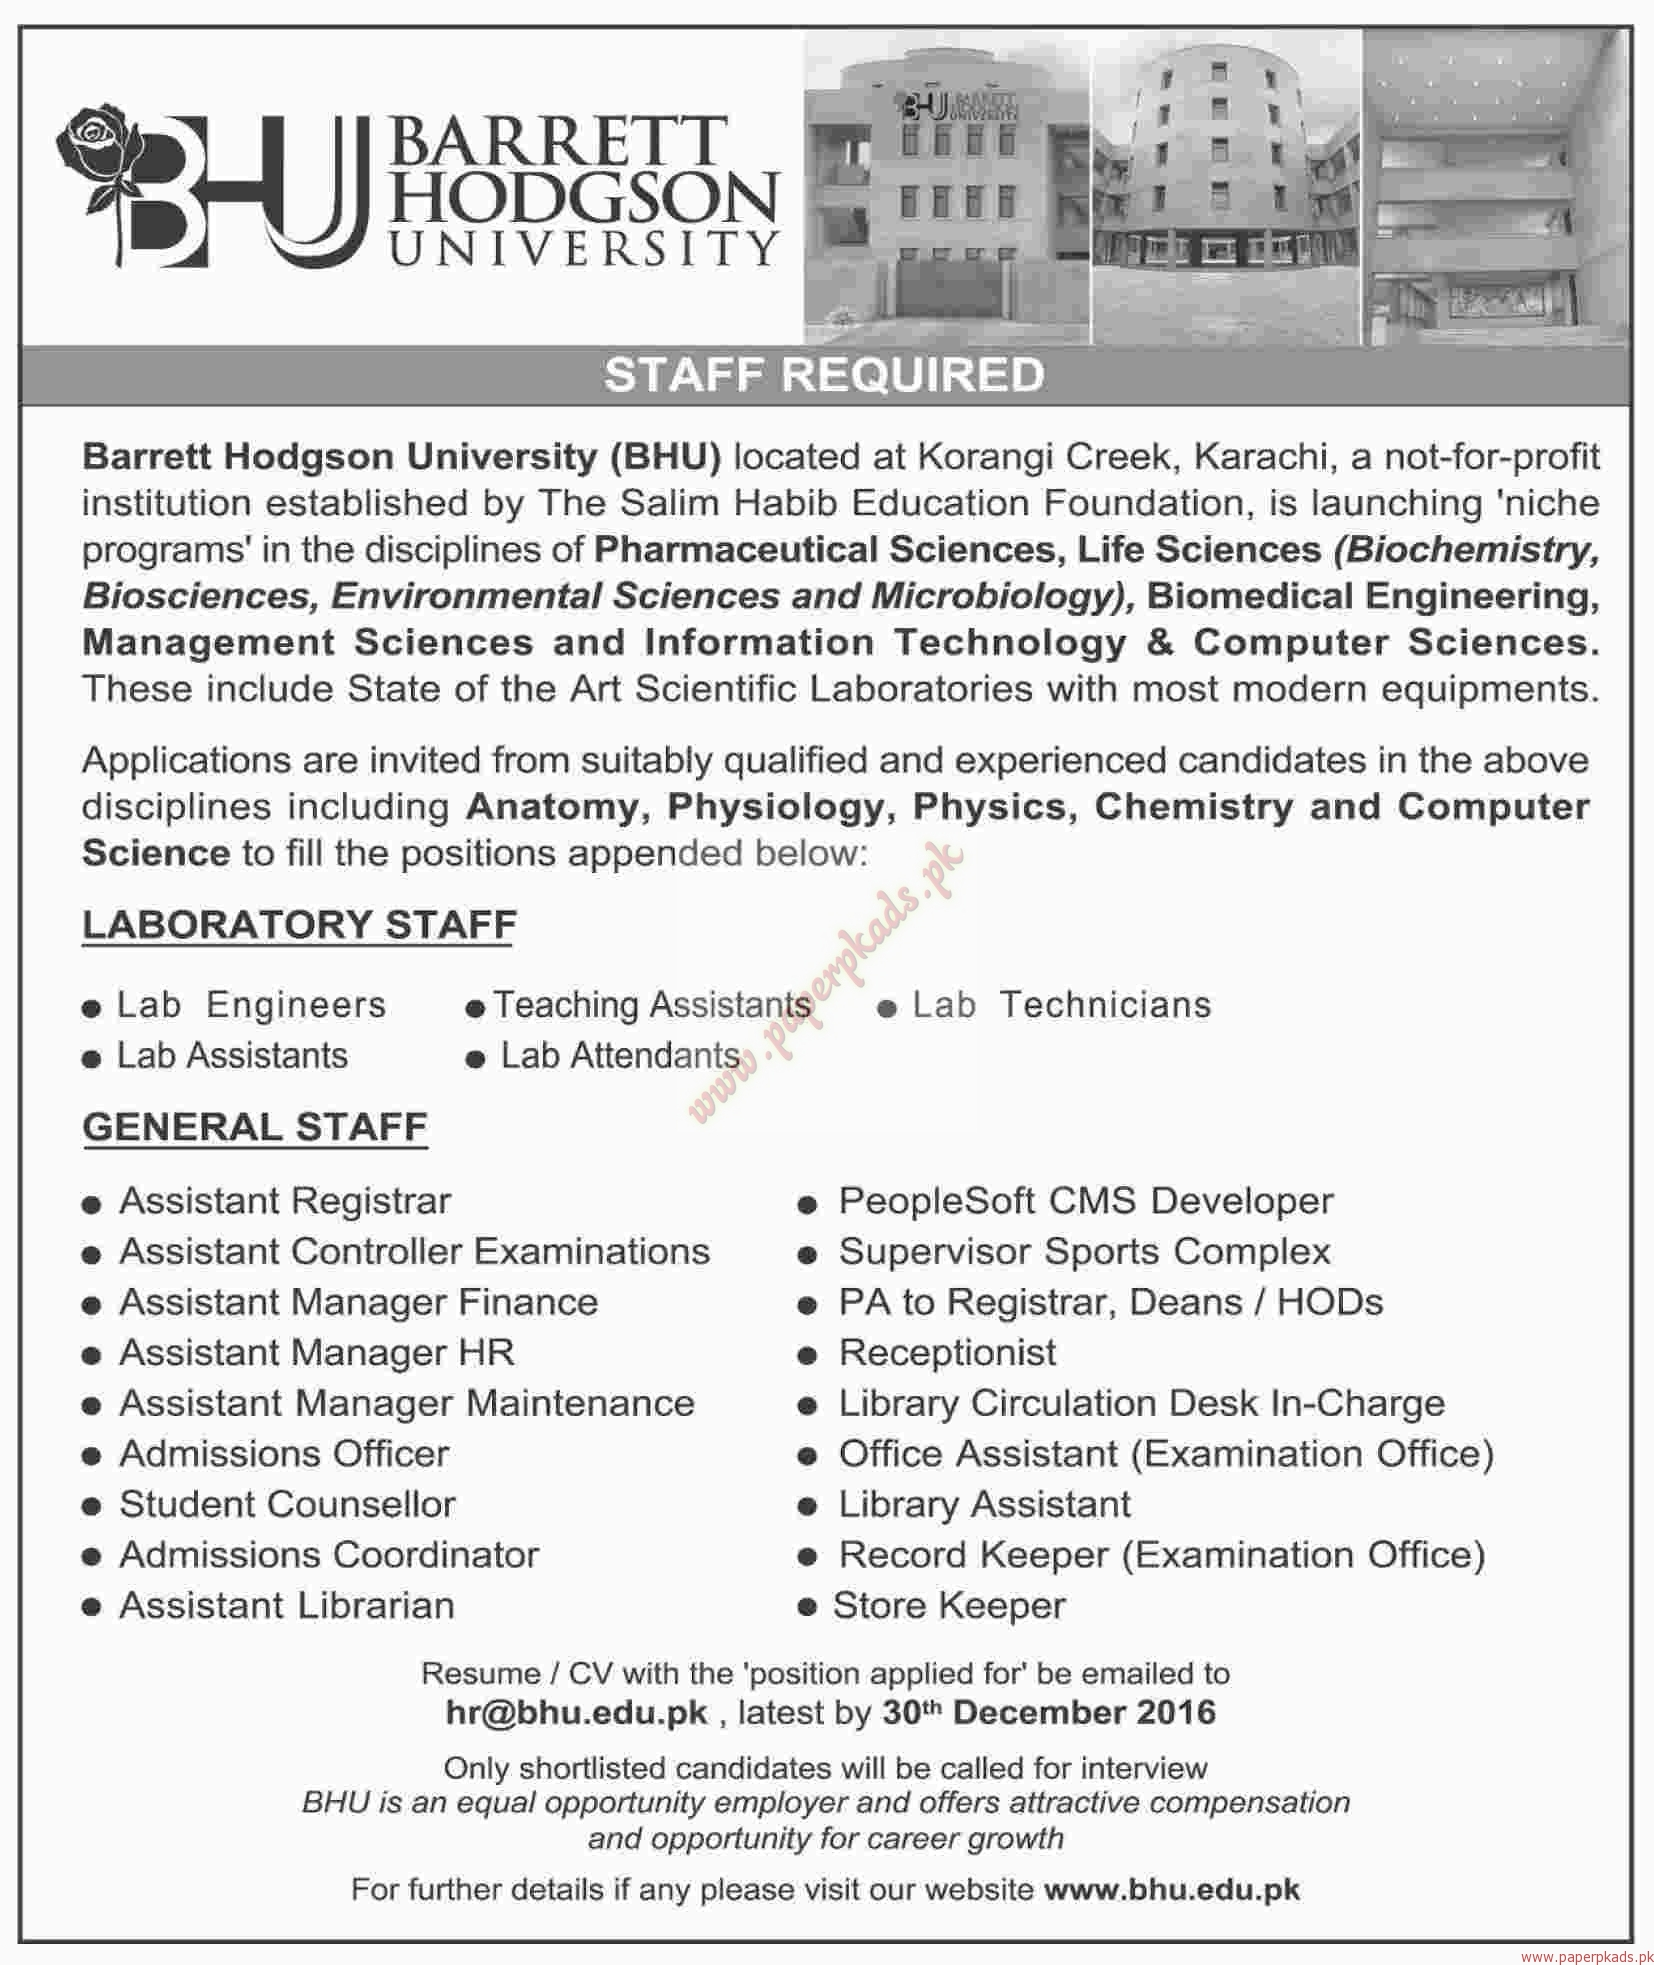 barrett hodgson university jobs dawn jobs ads 25 2016 related articles